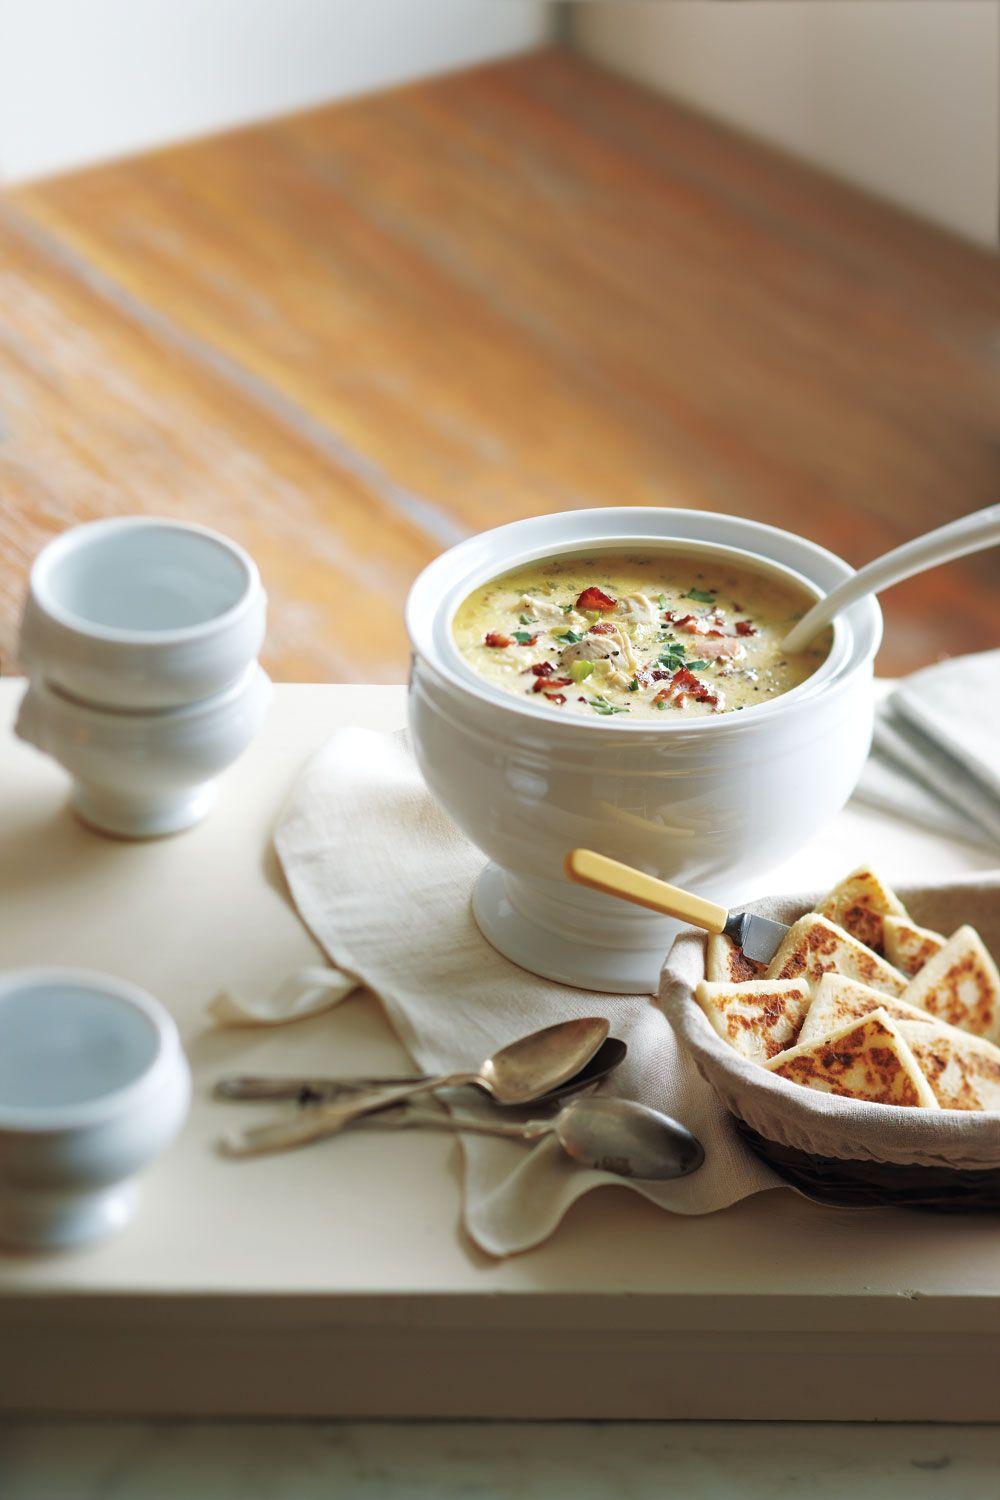 Michael Smith, P.E.I.'s culinary ambassador, shared his favourite chowder recipe with us. Made with easy to find ingredients and fresh Maritime seafood, it's sure to become a favourite in your home too. The chowder can be made a day or two in advance and reheated to serve. In fact, the chowder actually benefits from a night in the refrigerator: The extra time allows the flavours to really come together.